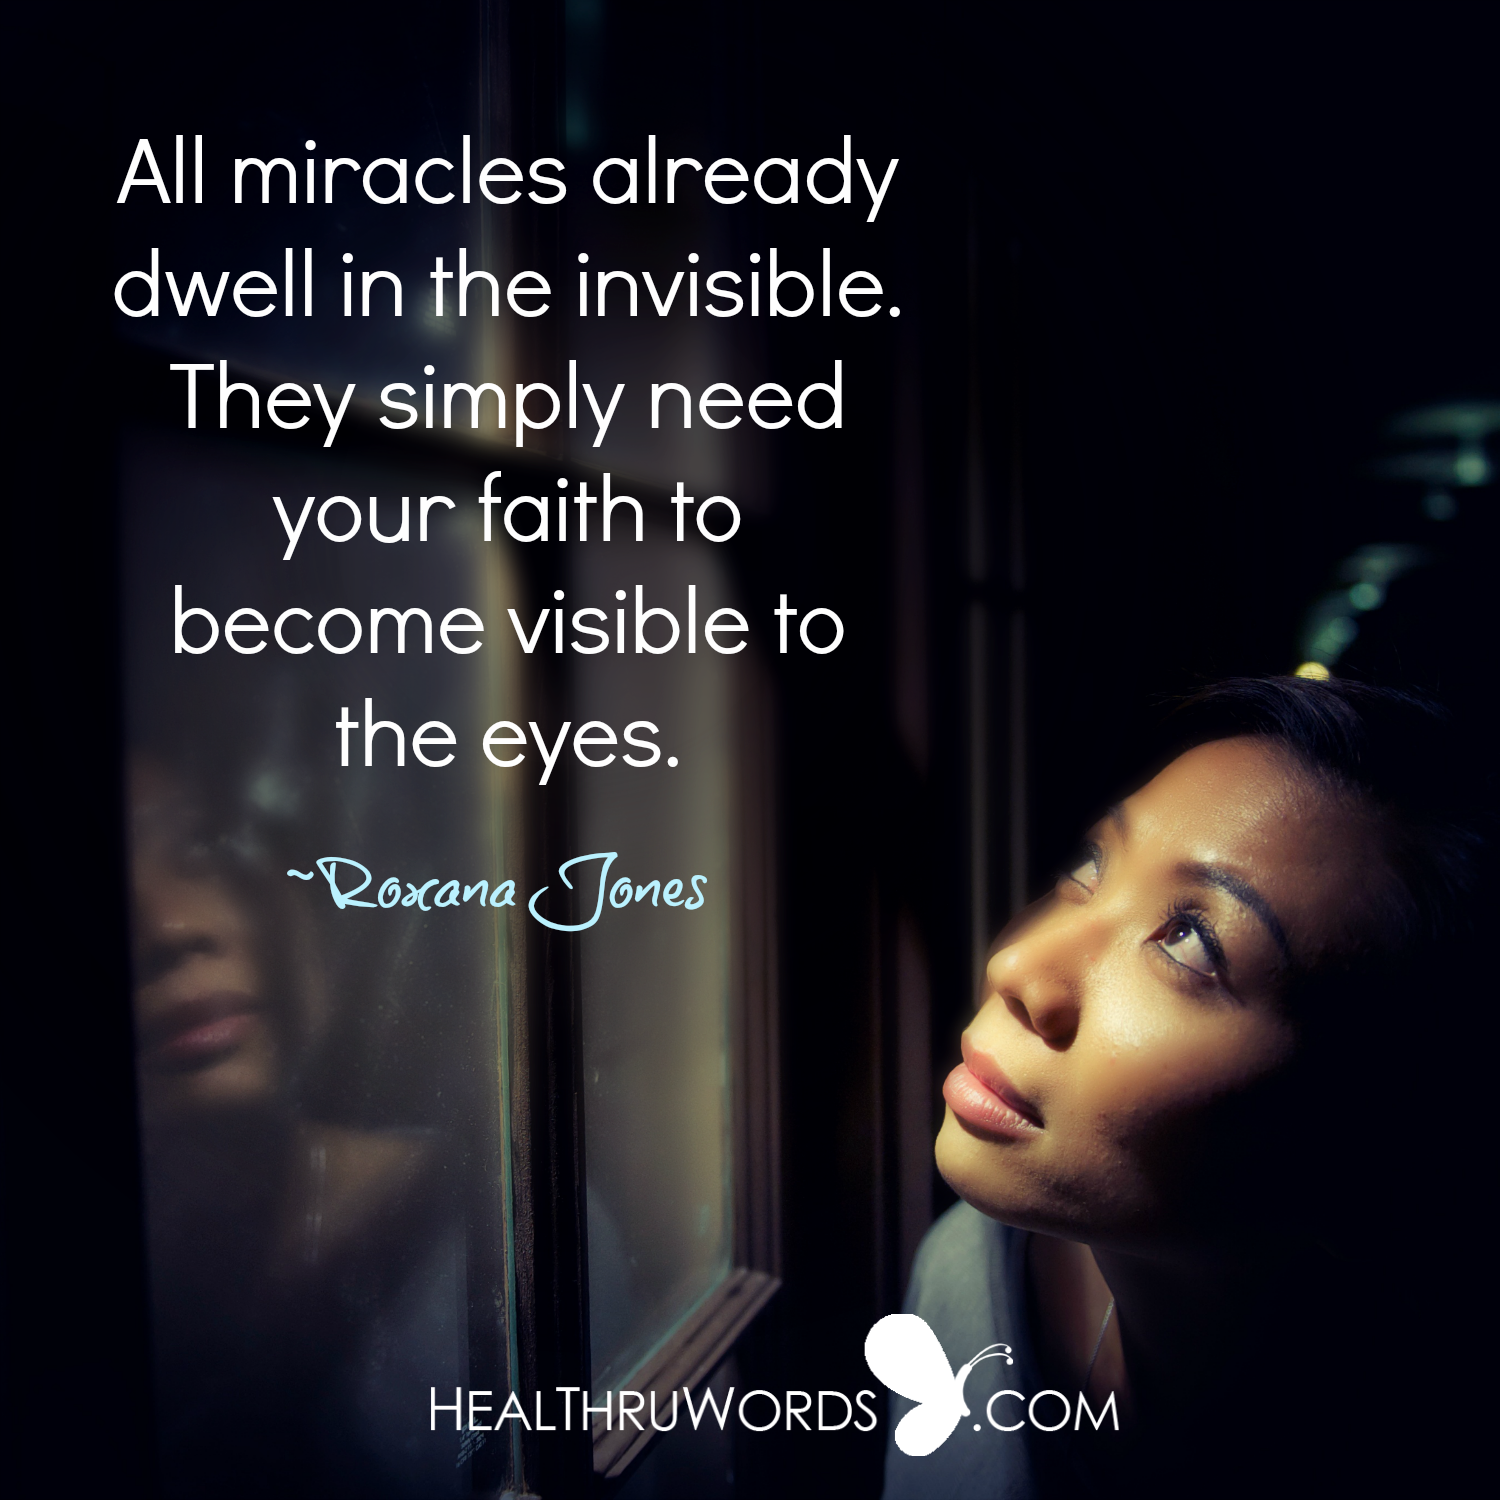 Inspirational Image: Do you believe in miracles?